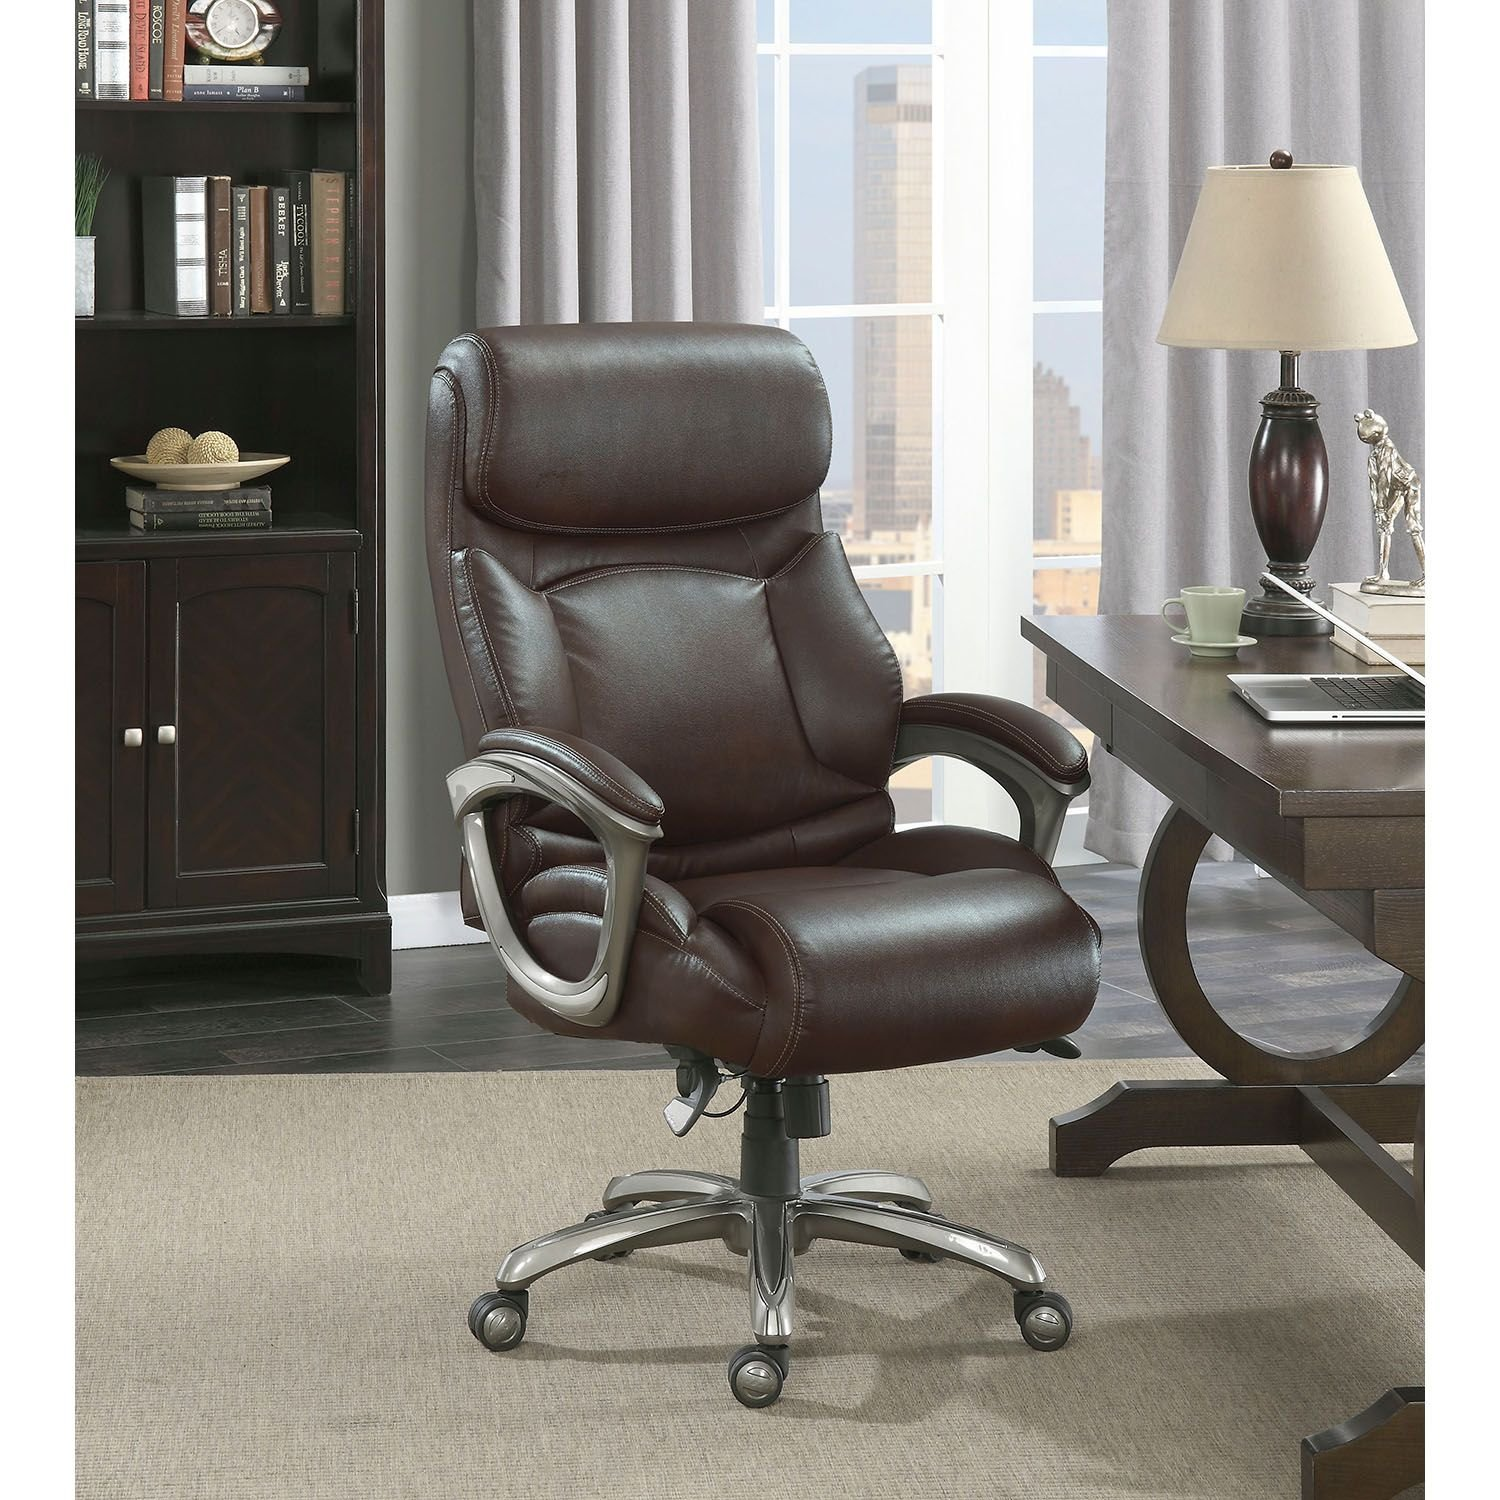 Amazon La Z Boy Martin Big & Tall Executive fice Chair